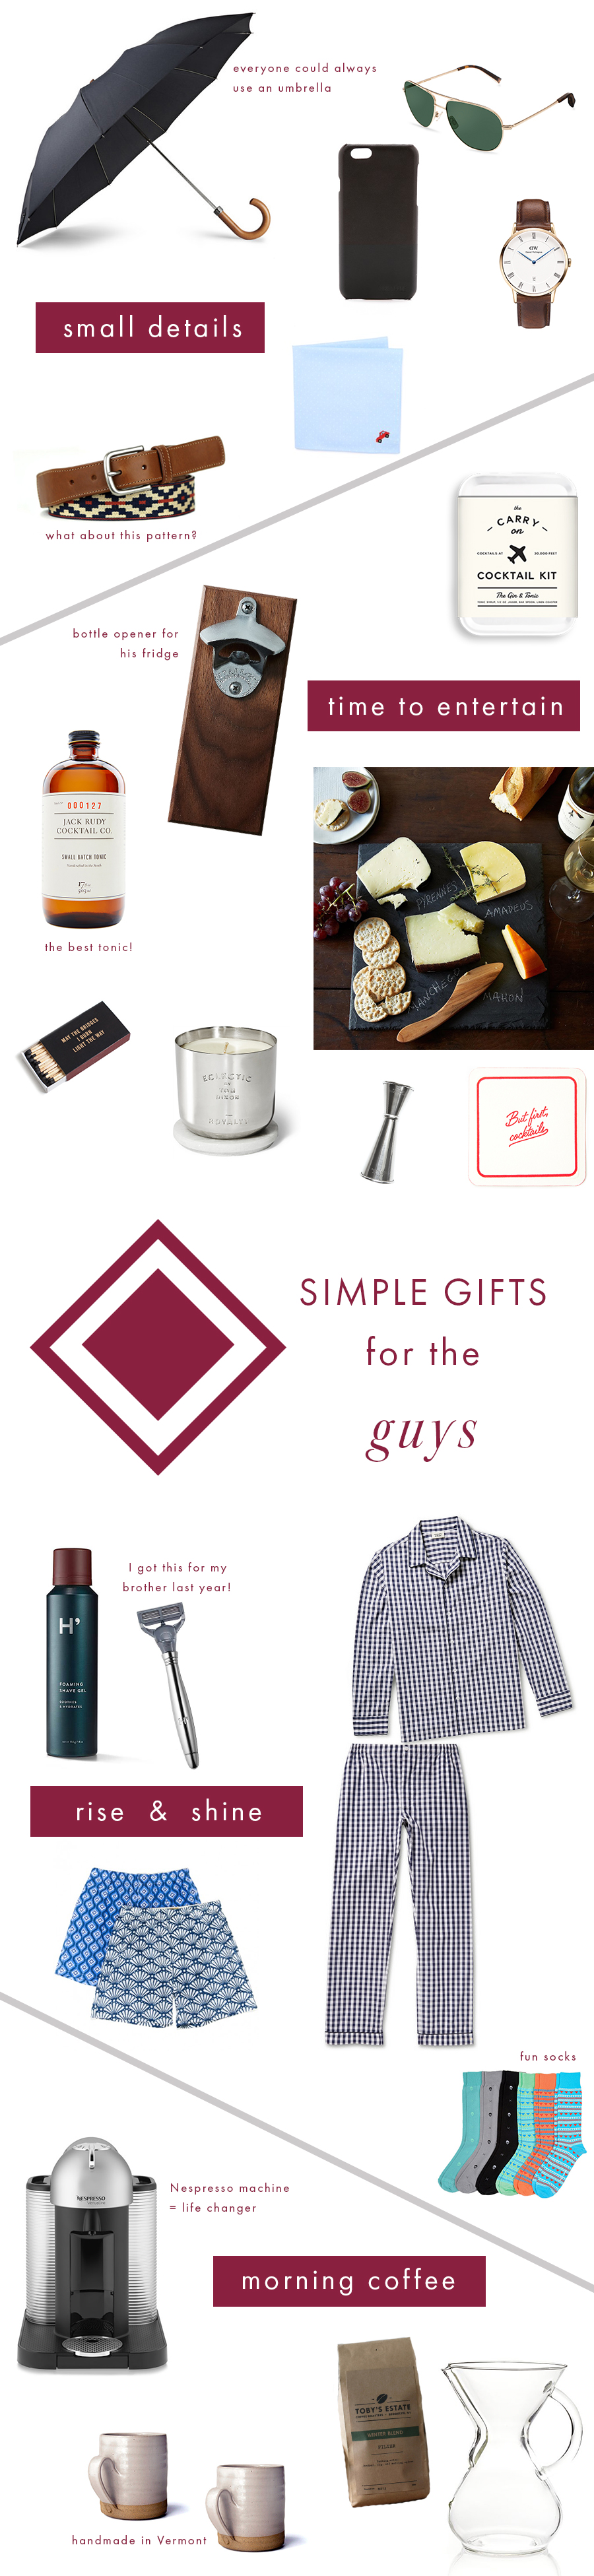 Gift Guide for The Guys - Simply Elegant Blog